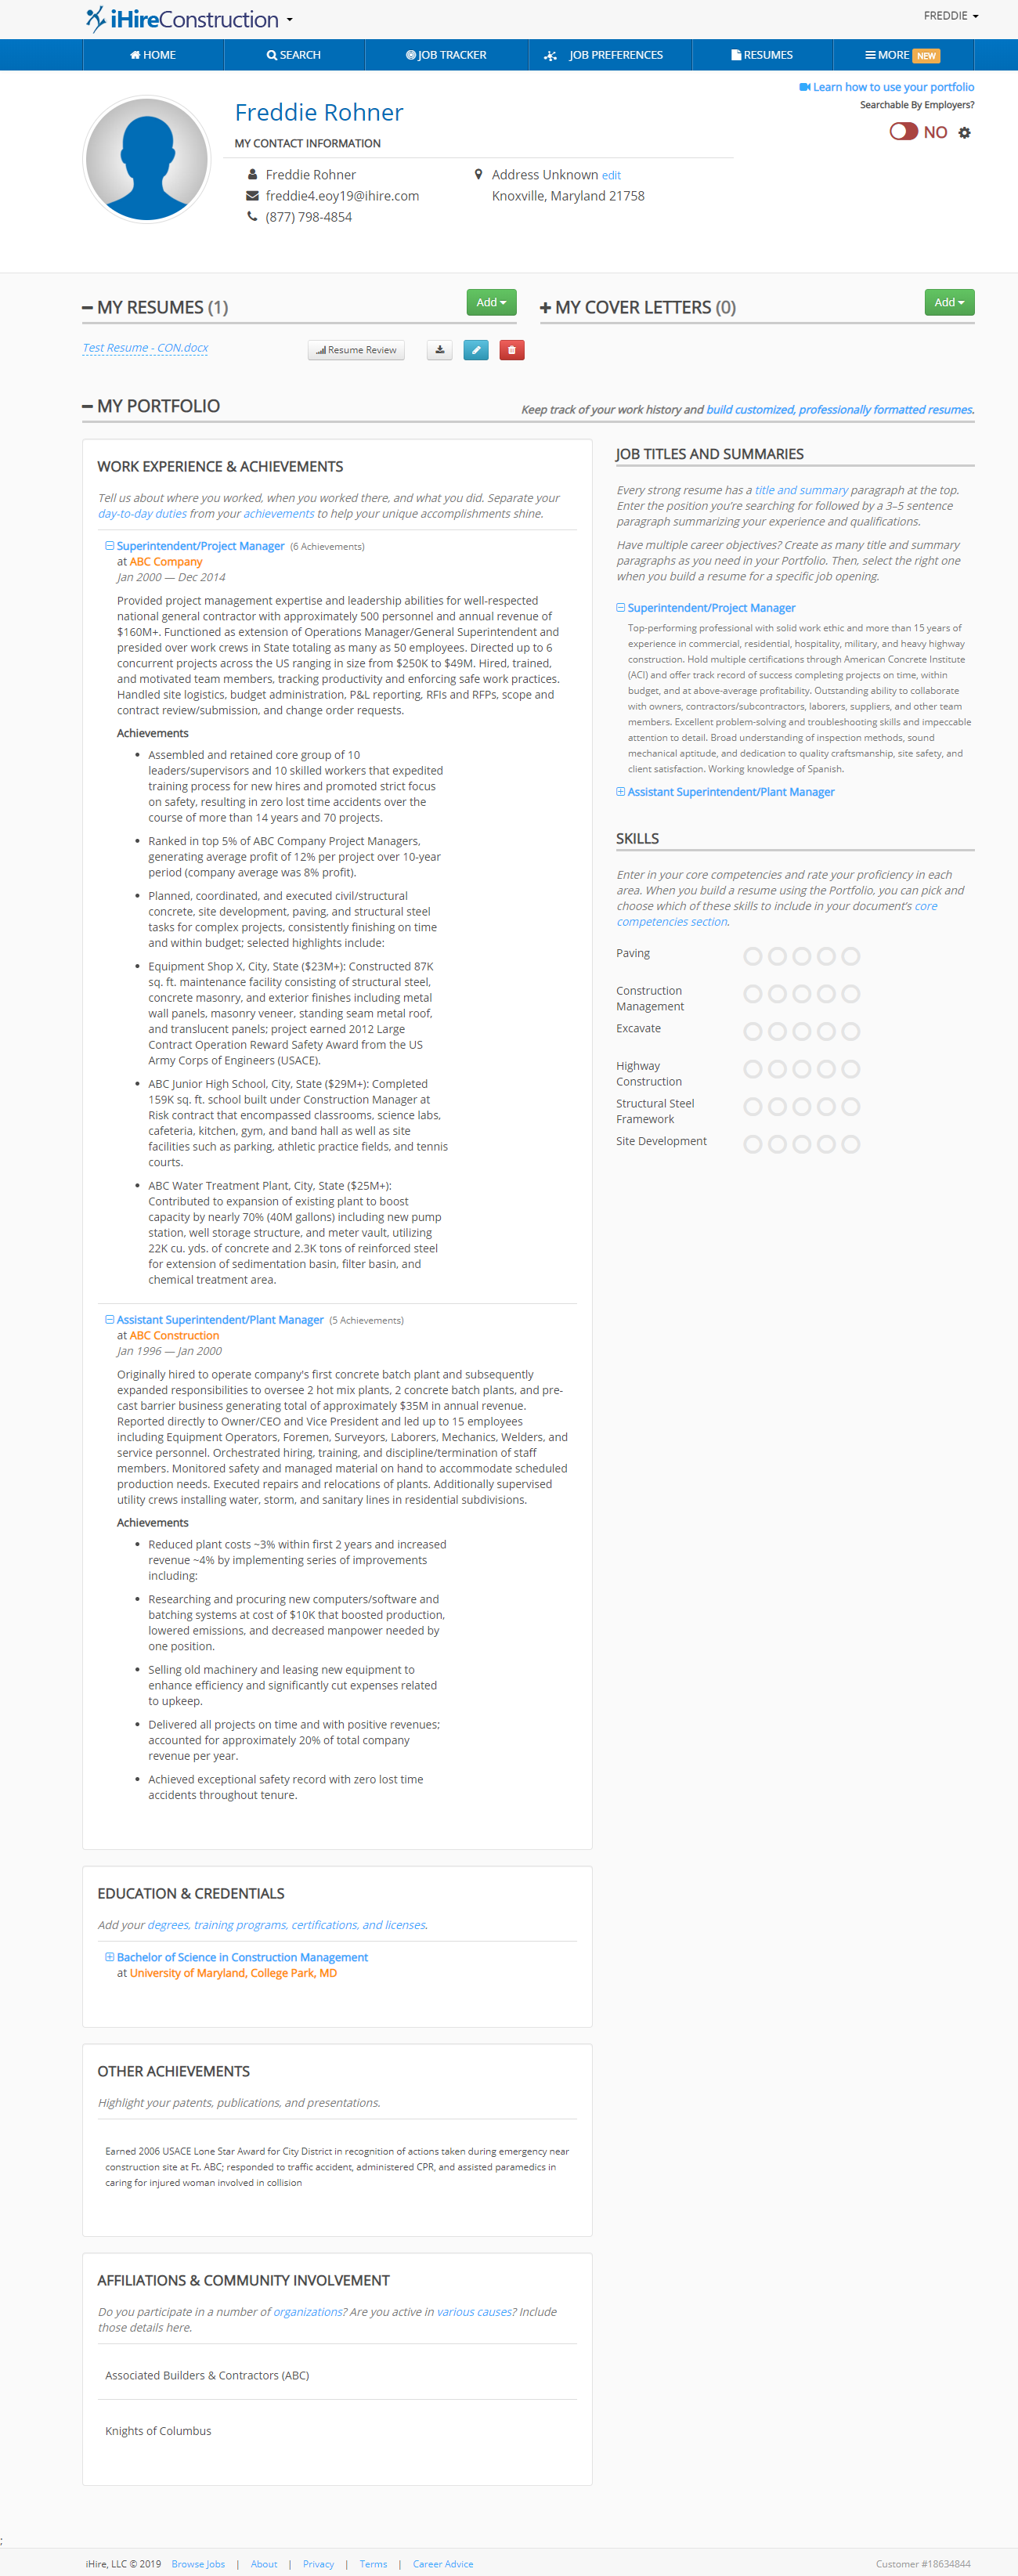 Screenshot of iHire's Portfolio tool with user-created master resume